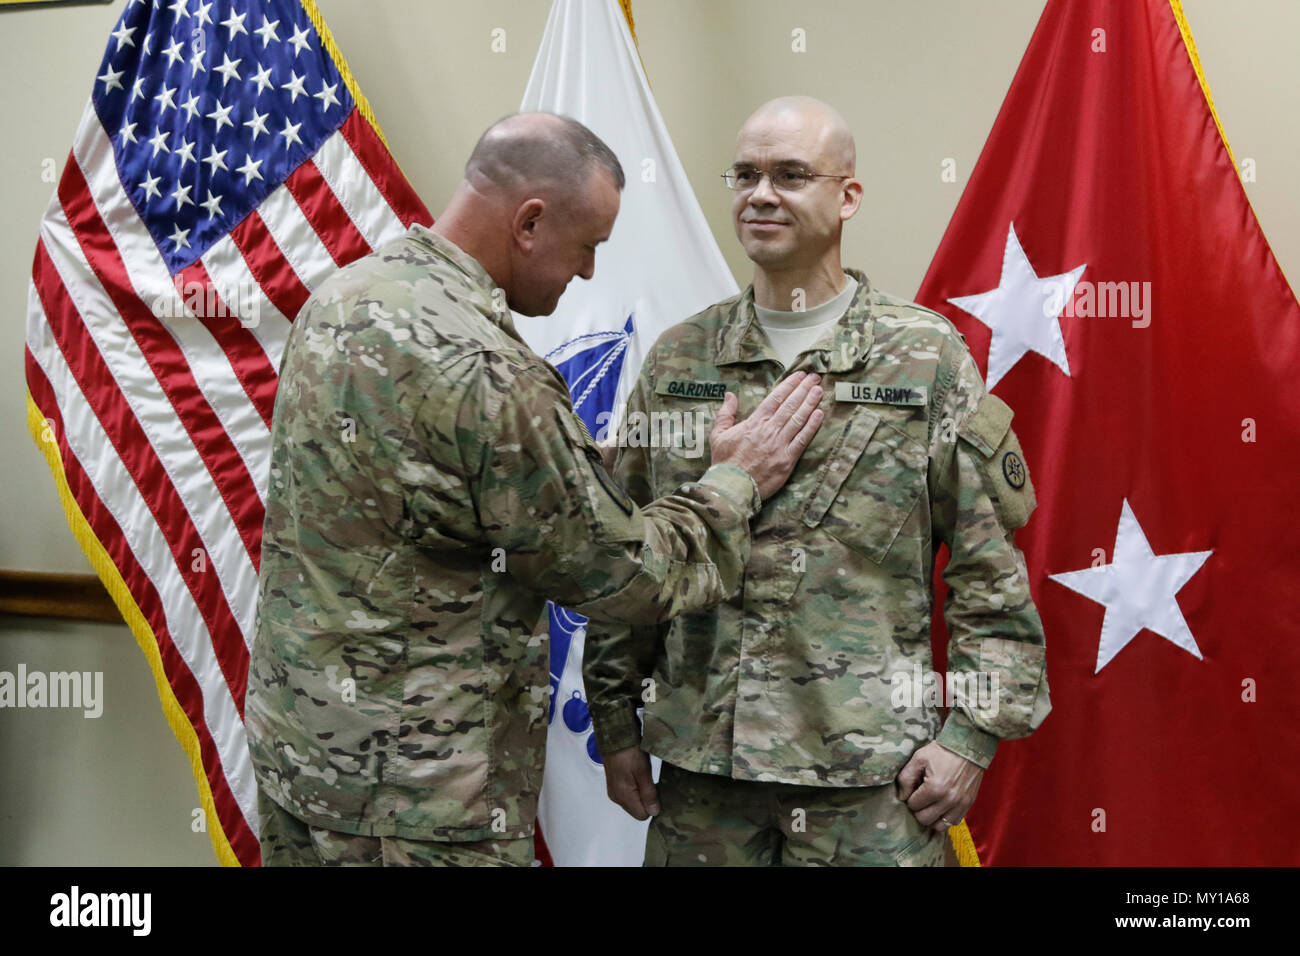 Brig. Gen. Robert D. Harter, 316th Sustainment Command (Expeditionary) commanding general, places the rank of Chief Warrant Officer 4 on Richard Gardner during a promotion ceremony at Camp Arifjan, Kuwait, Dec. 31, 2016. (U.S. Army Photo by Maj. Julius Penn) - Stock Image